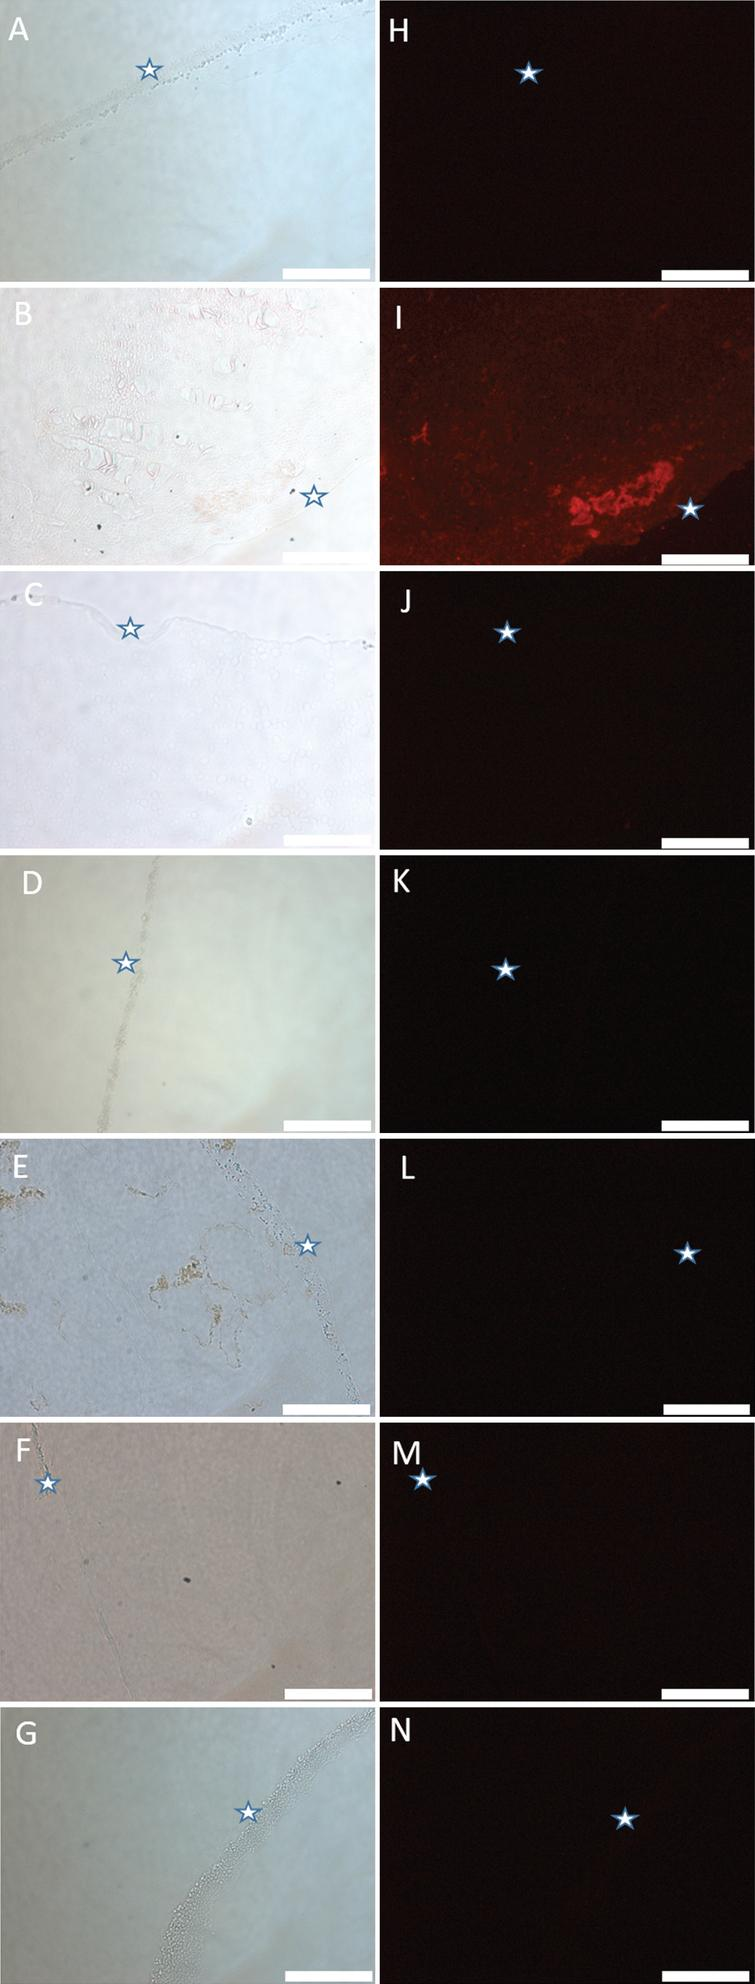 Light and fluorescence images of metal-impregnated agarose blocks stained with lumogallion. A, H) agarose gel only; B, I) agarose gel + Al(III); C, J) agarose gel + Ca(II); D, K) agarose gel + Cu(II); E, L) agarose gel + Fe(III); F, M) agarose gel + Mg(II); G, N) agarose gel + Zn(II). Stars indicate equivalent areas of each agarose block. Scale bar is 50 μm.